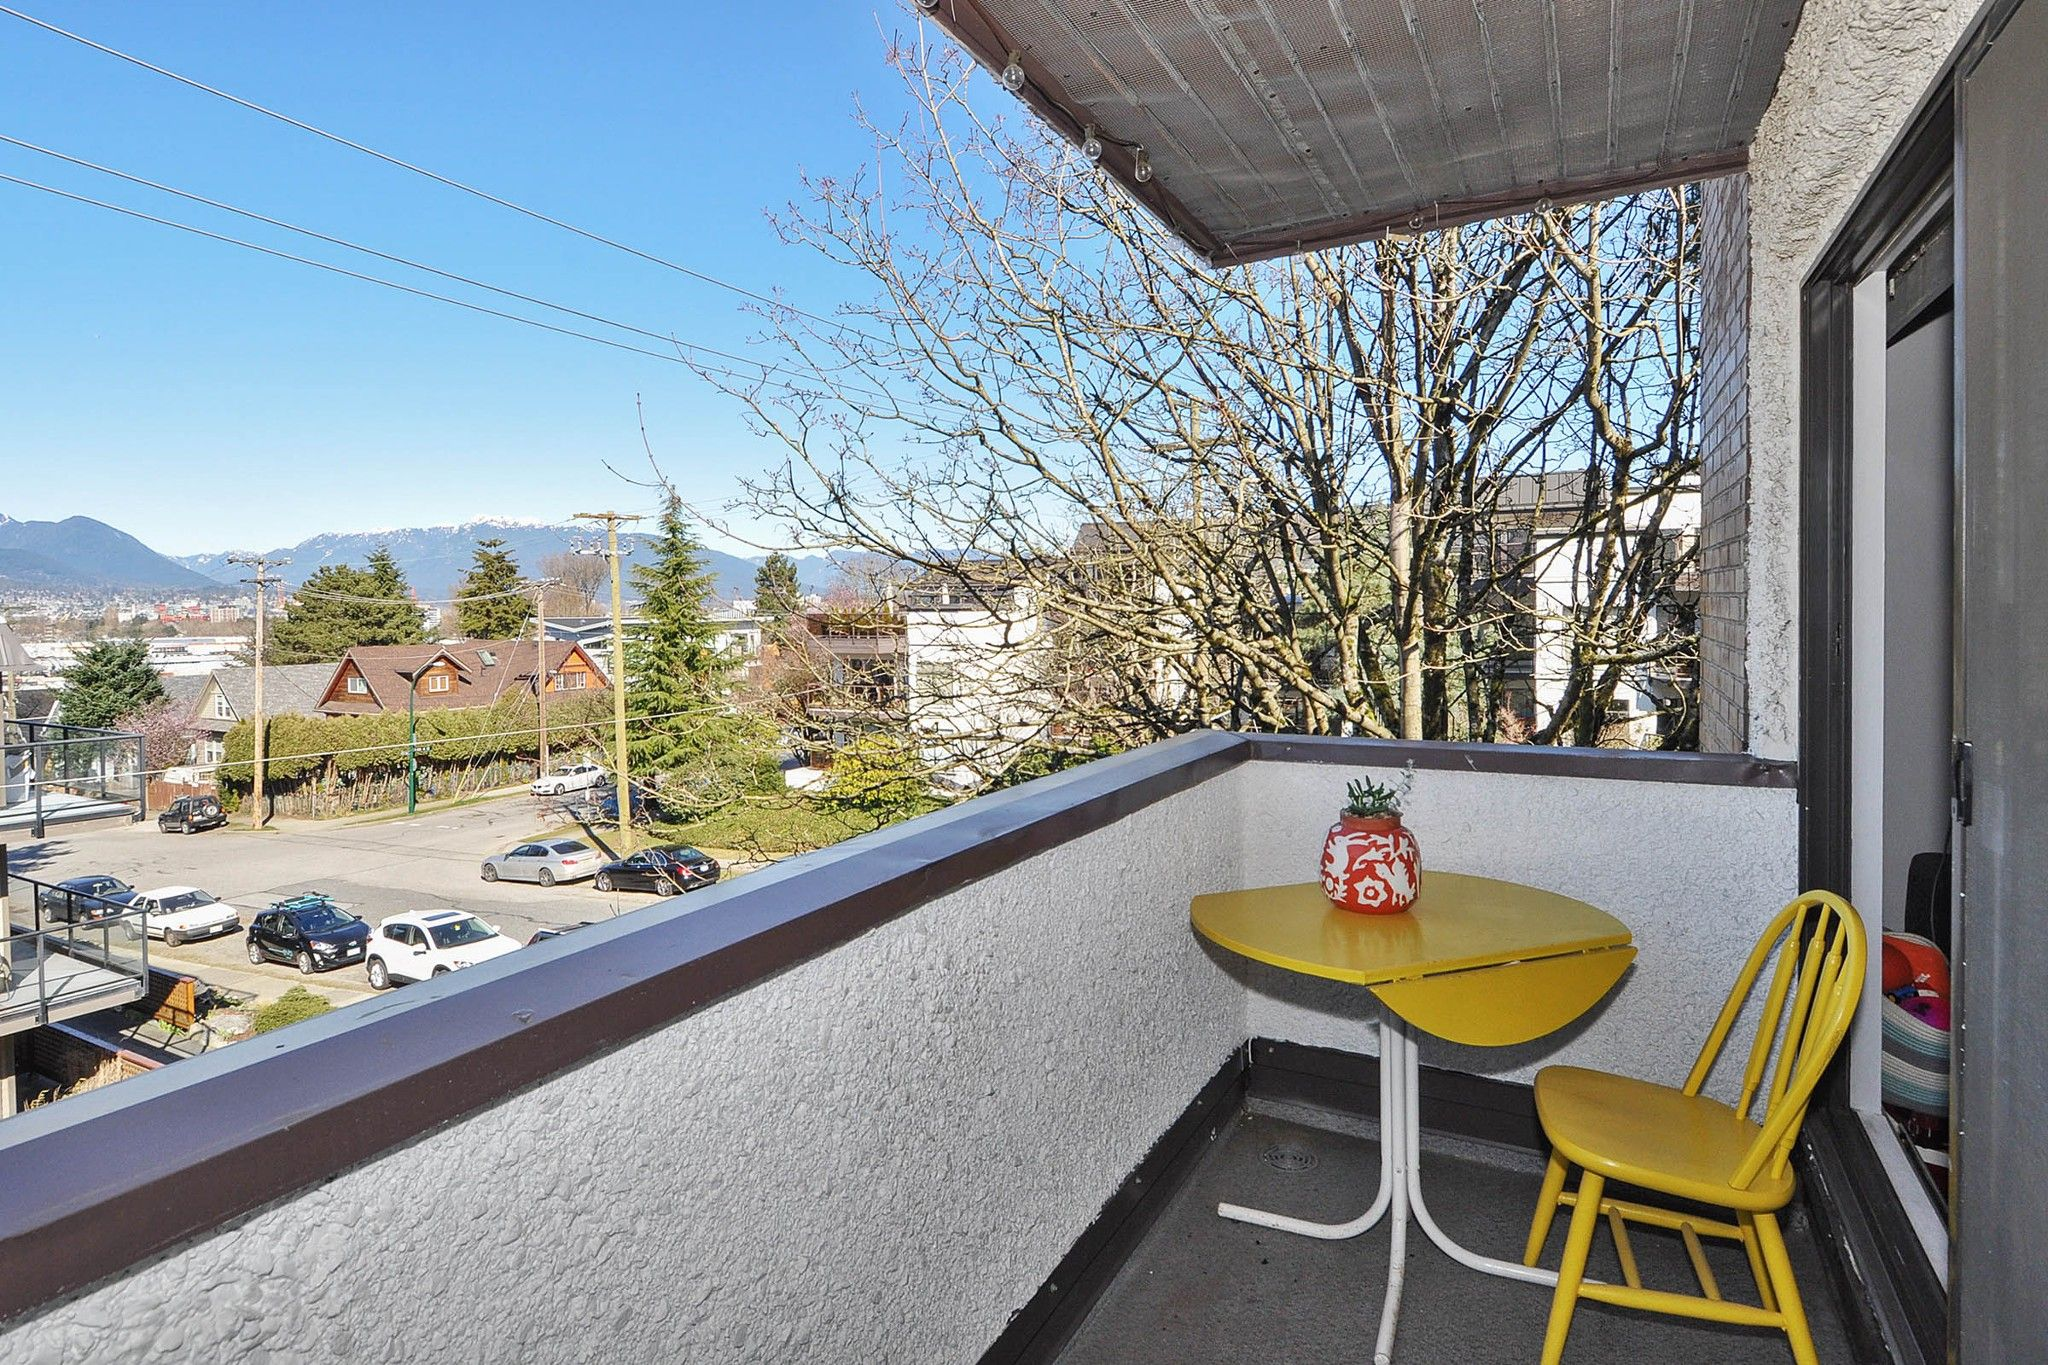 """Photo 17: Photos: 302 391 E 7TH Avenue in Vancouver: Mount Pleasant VE Condo for sale in """"OAKWOOD PARK"""" (Vancouver East)  : MLS®# R2352076"""